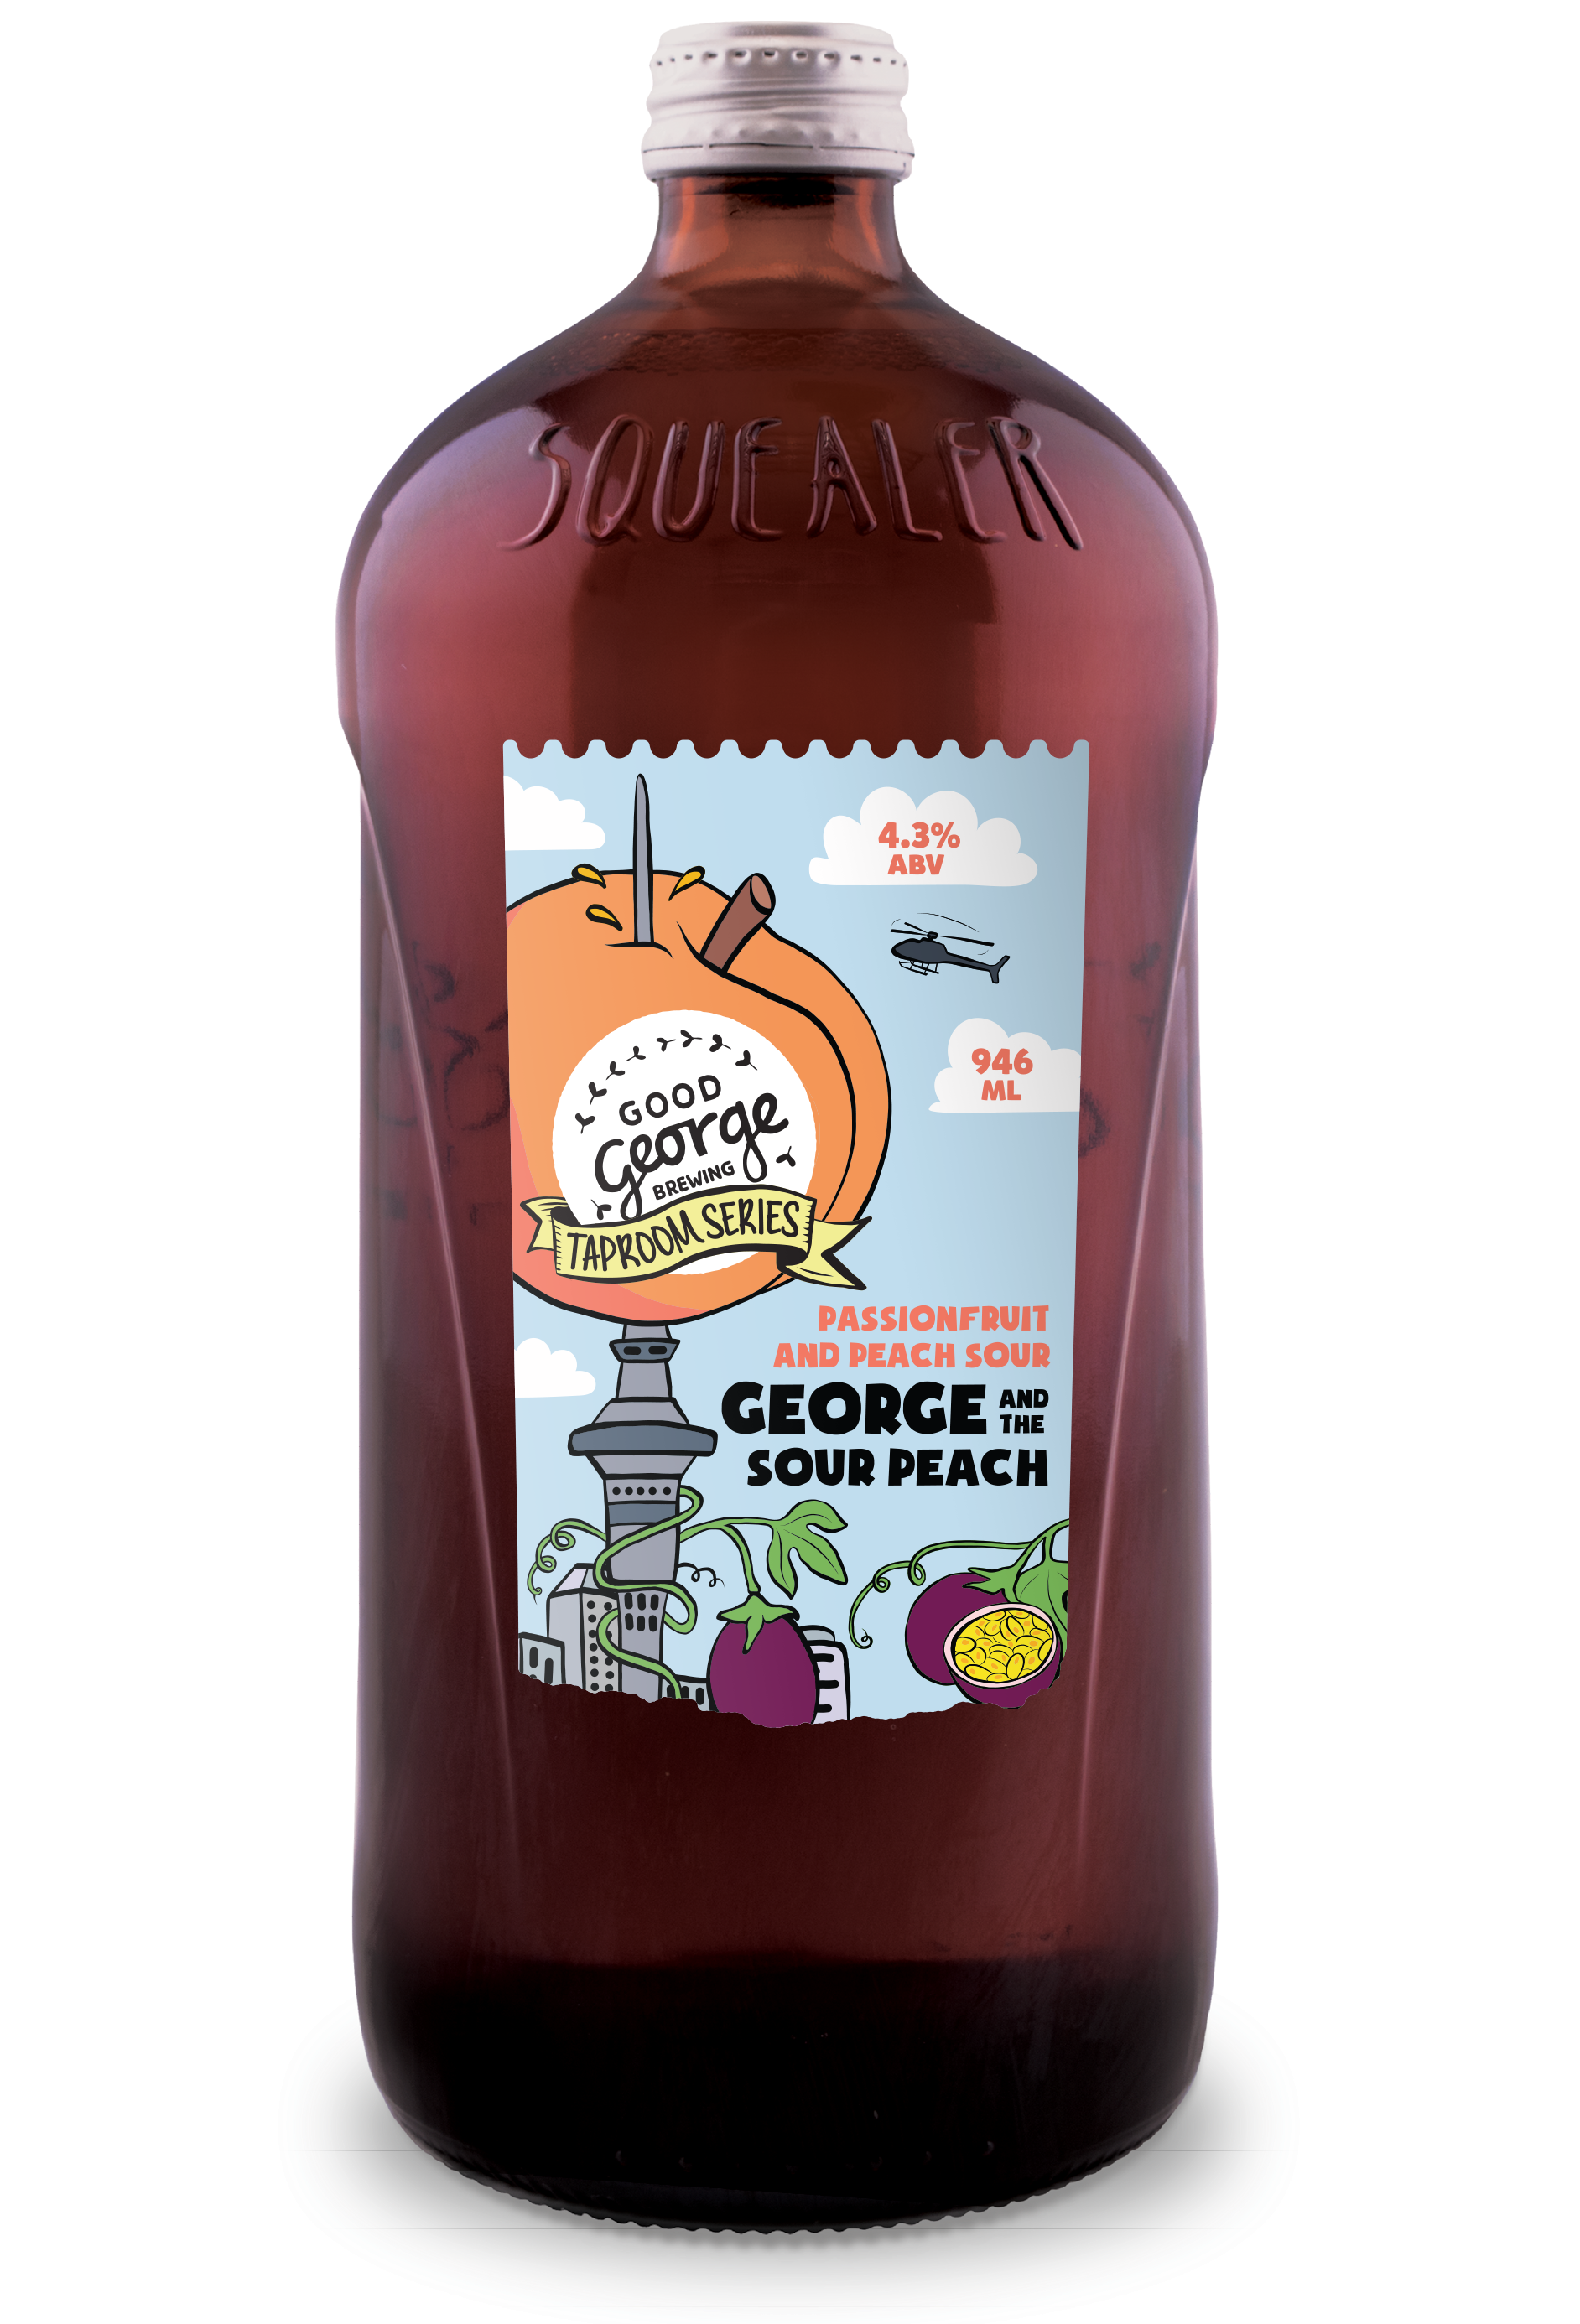 Good George and the sour peach